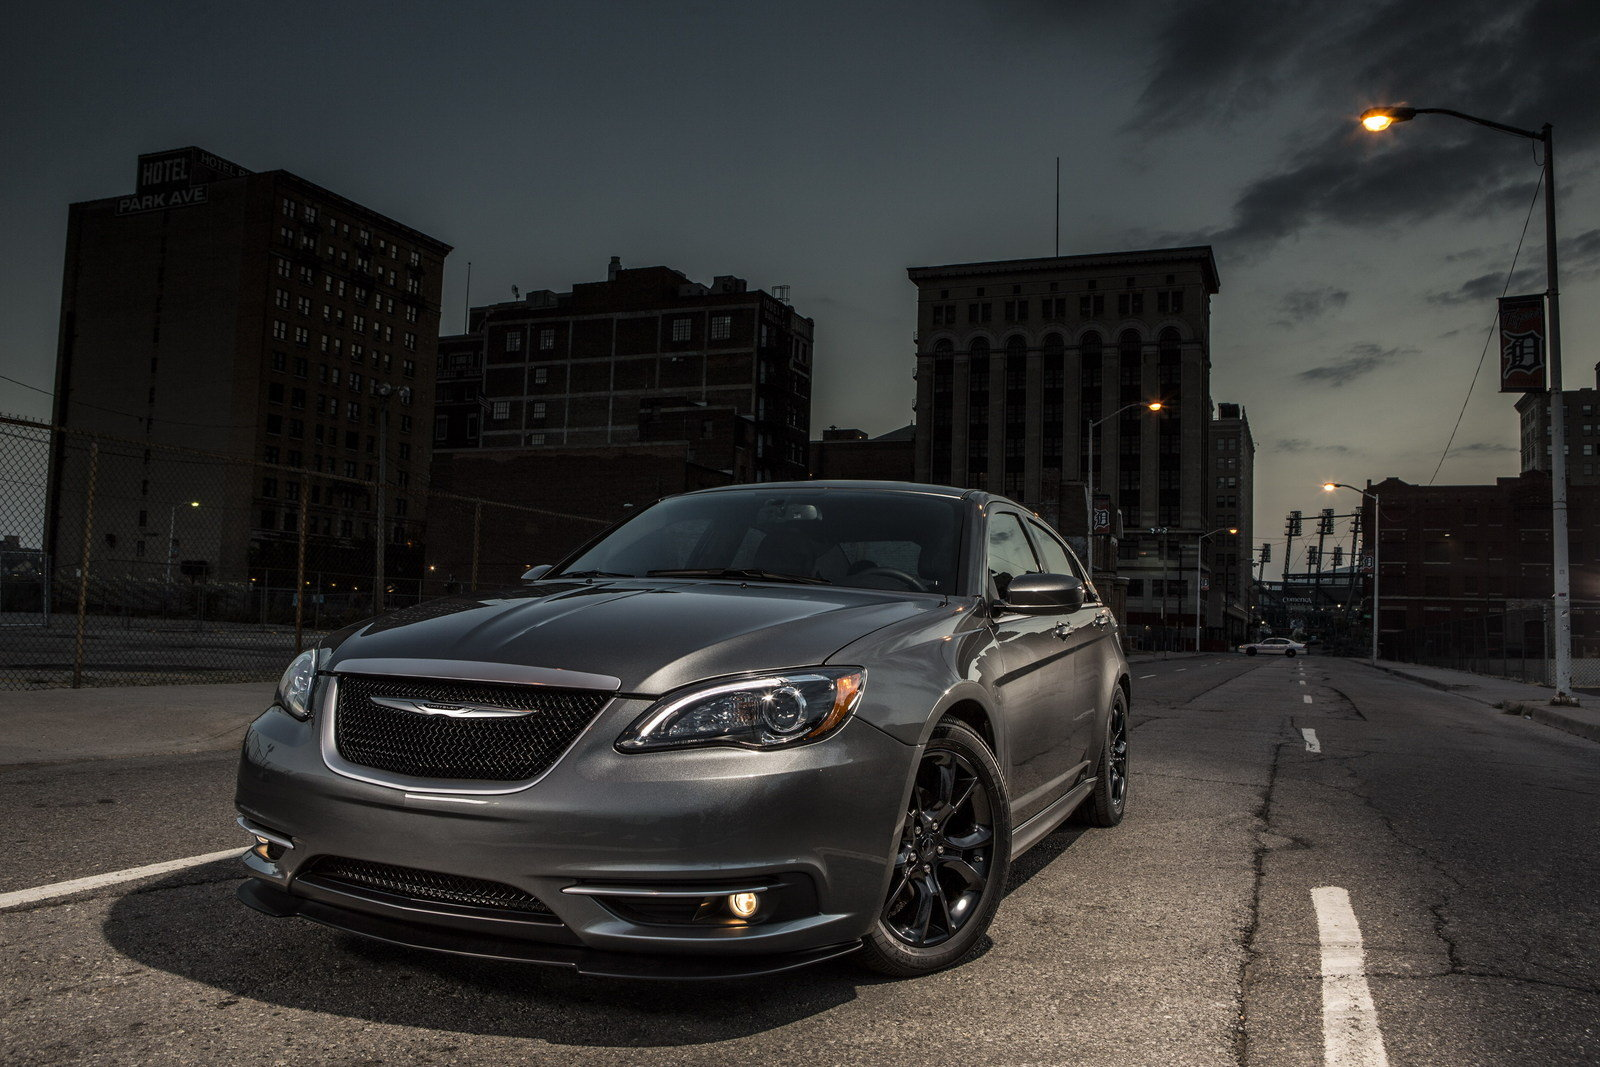 2014 chrysler 200 s special edition review top speed. Black Bedroom Furniture Sets. Home Design Ideas